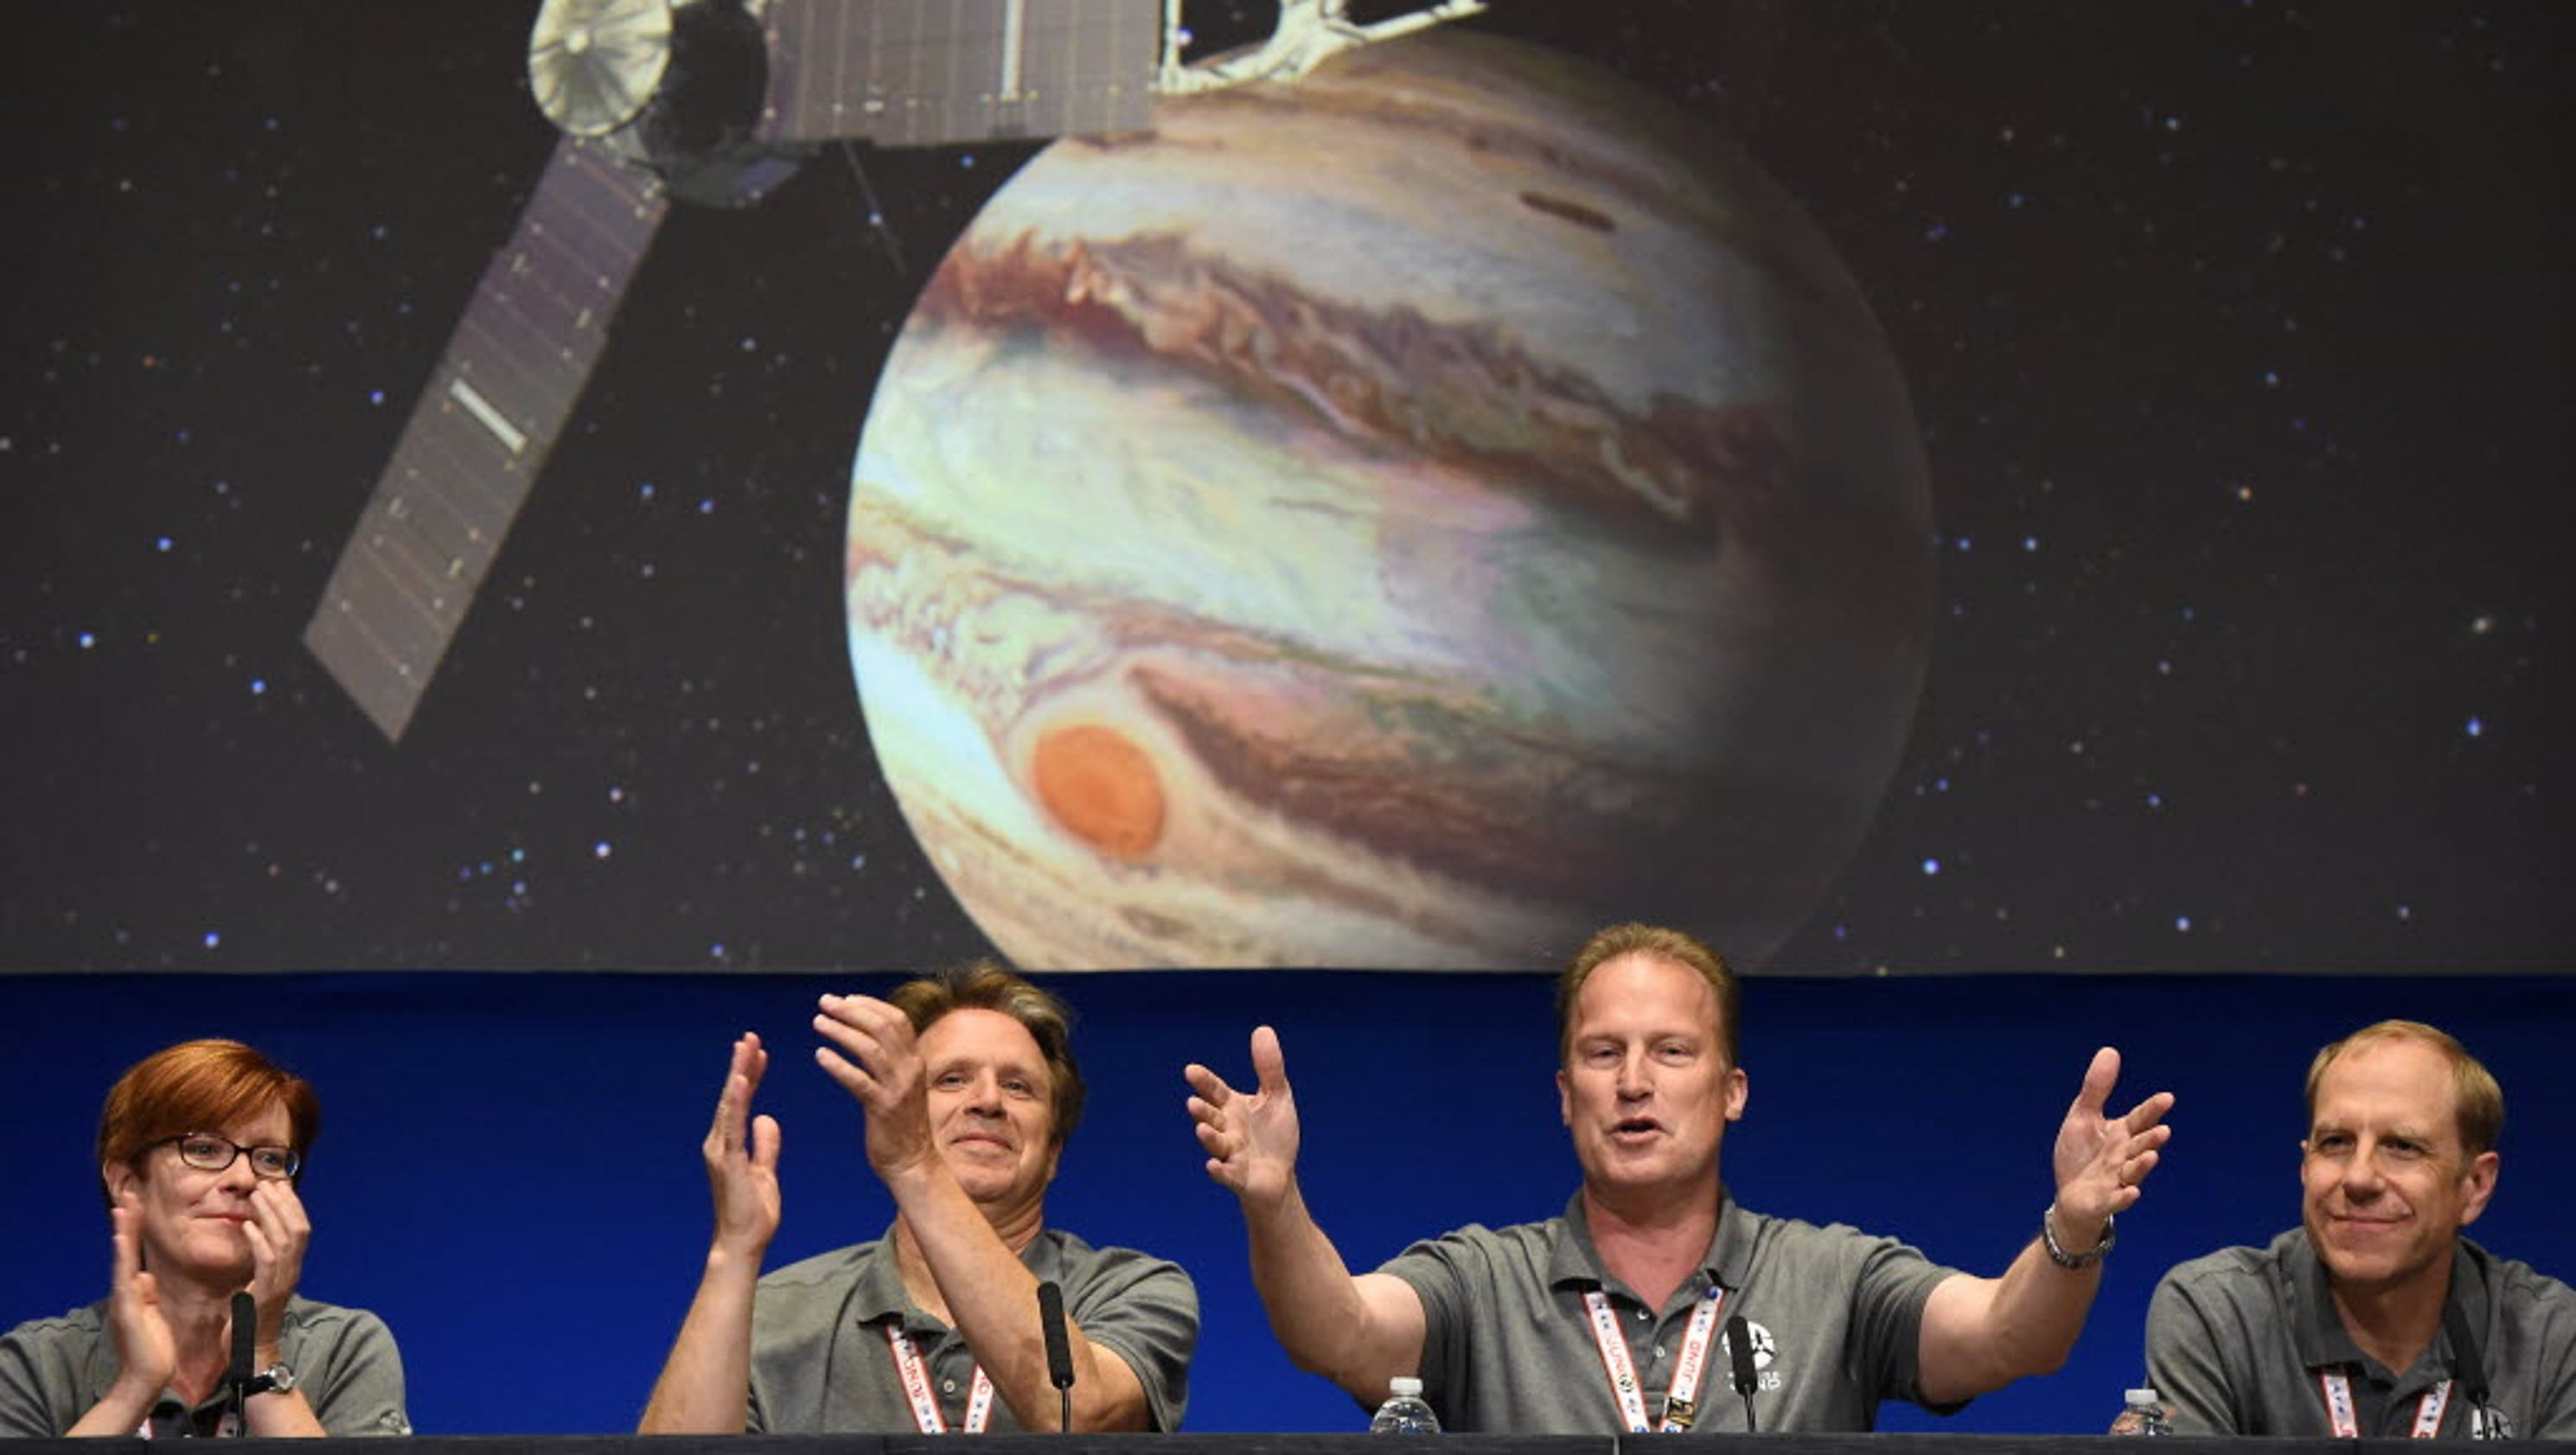 NASA's Juno poised to begin transmitting close-up views of Jupiter